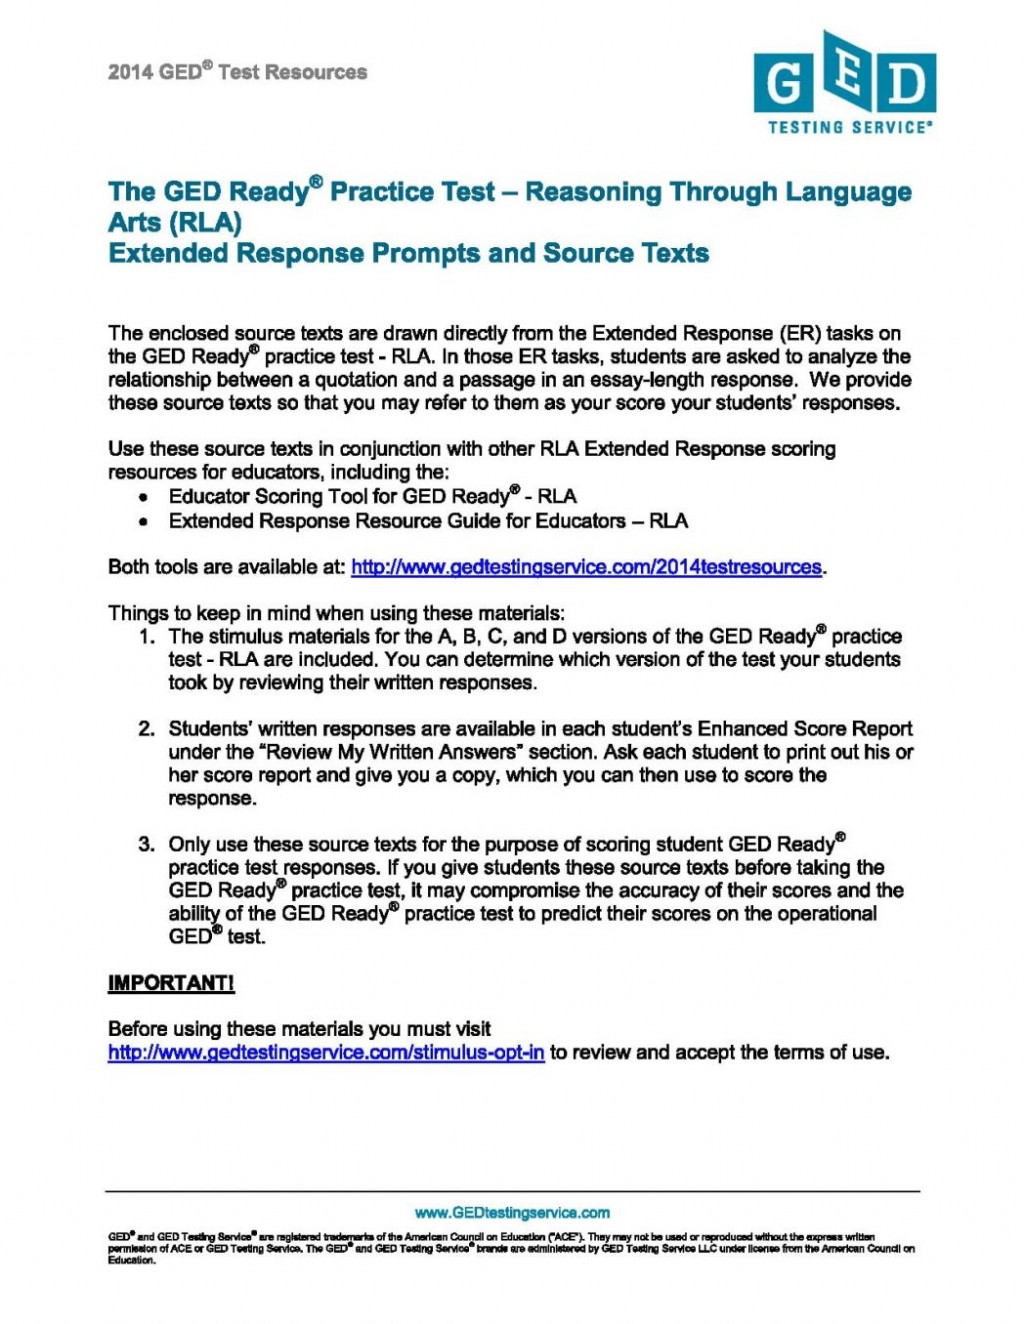 004 Sample Ged Essays With Scores Essay Example Online Practice Coursework Writing Service Eqpapernskq Template Ready Extended Res In Spanish Youtube Tips Rubric Topics Samples Lesson Rare Pdf Large